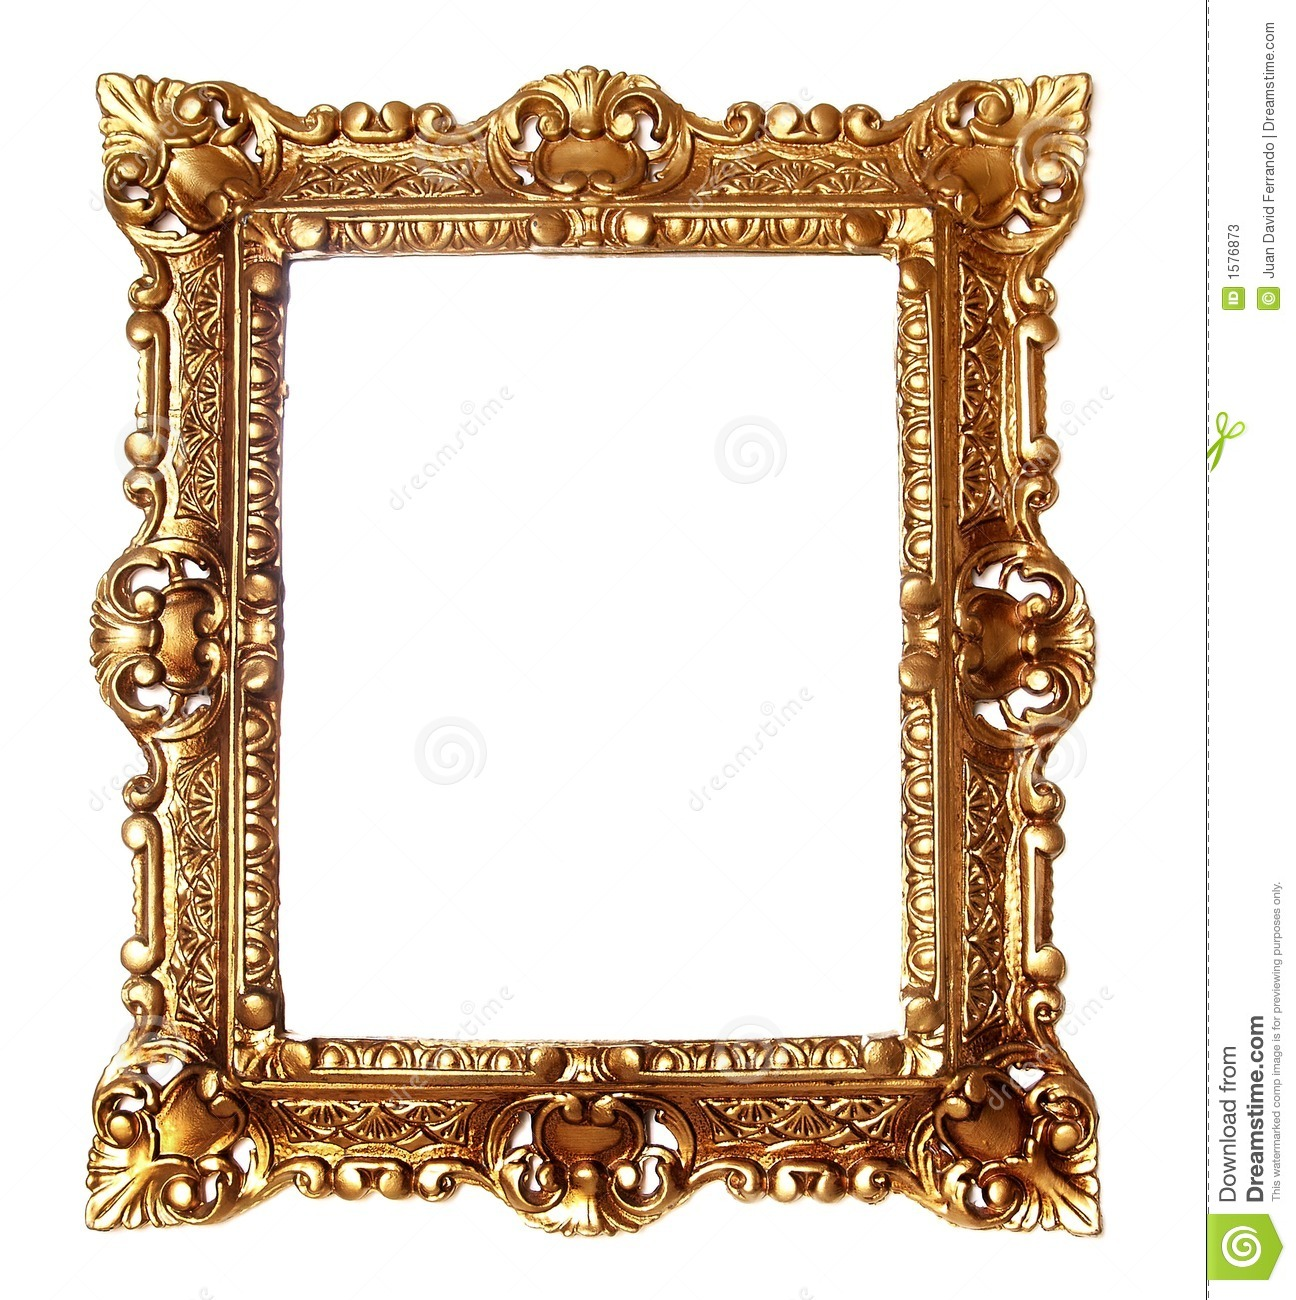 Vintage rectangle border clipart clipart kid - Gold Frame Clipart Clipart Suggest